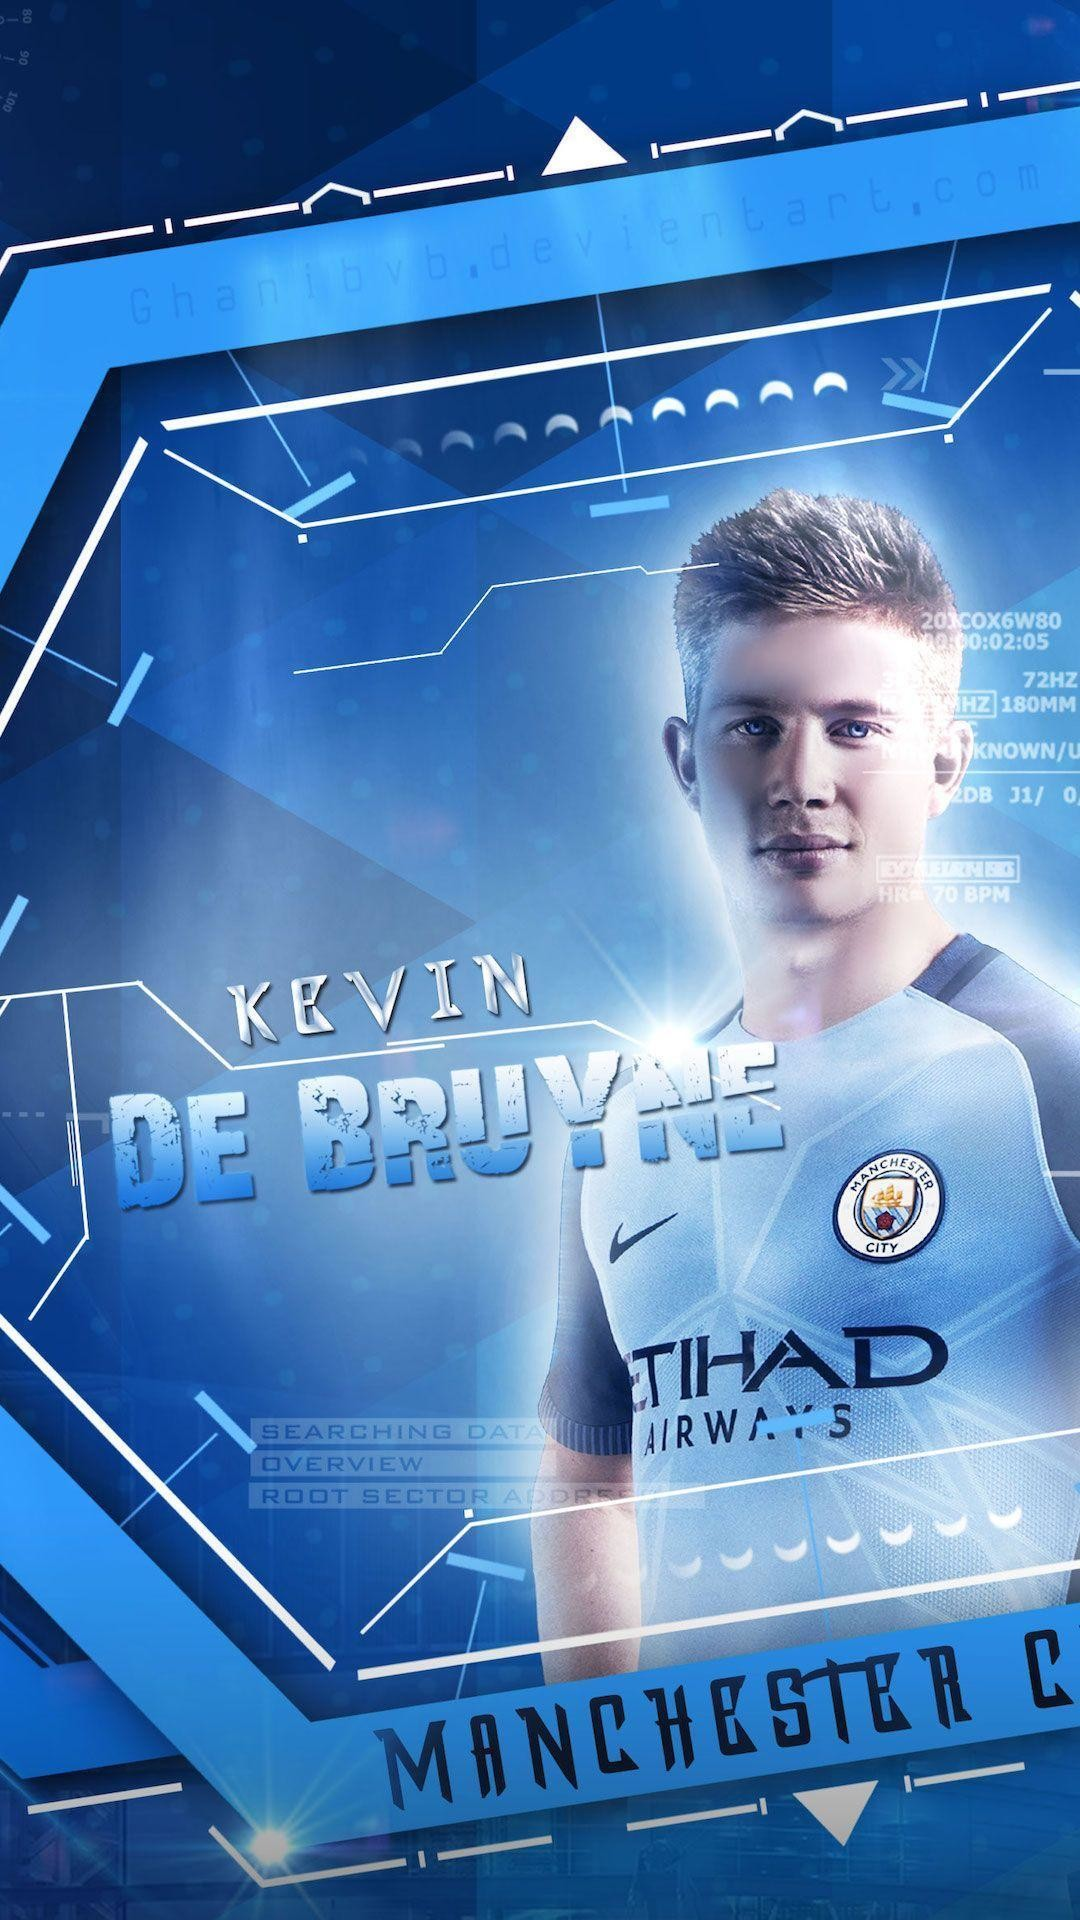 1080x1920 Kevin De Bruyne Manchester City iPhone Wallpaper - Wallpapers iPhone